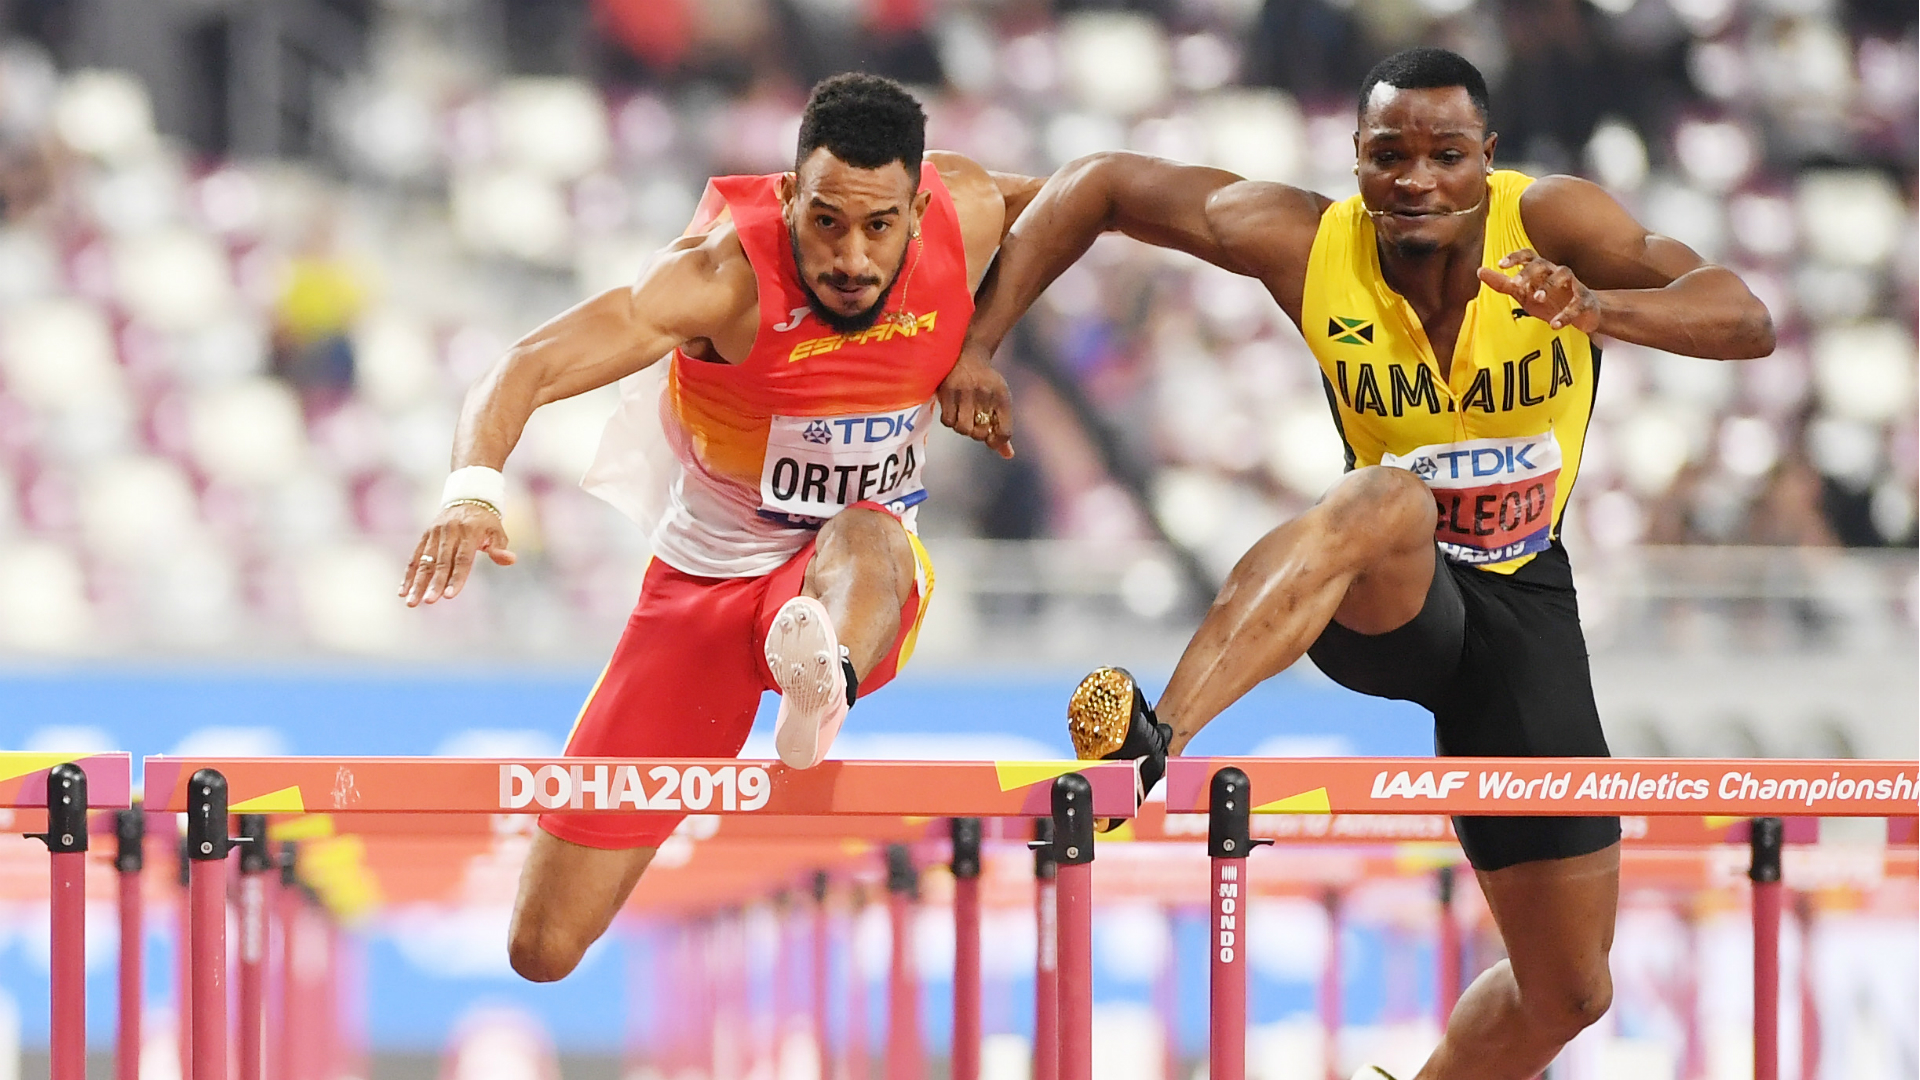 Hurdles star lands dramatic medal reprieve at World Athletics Championships